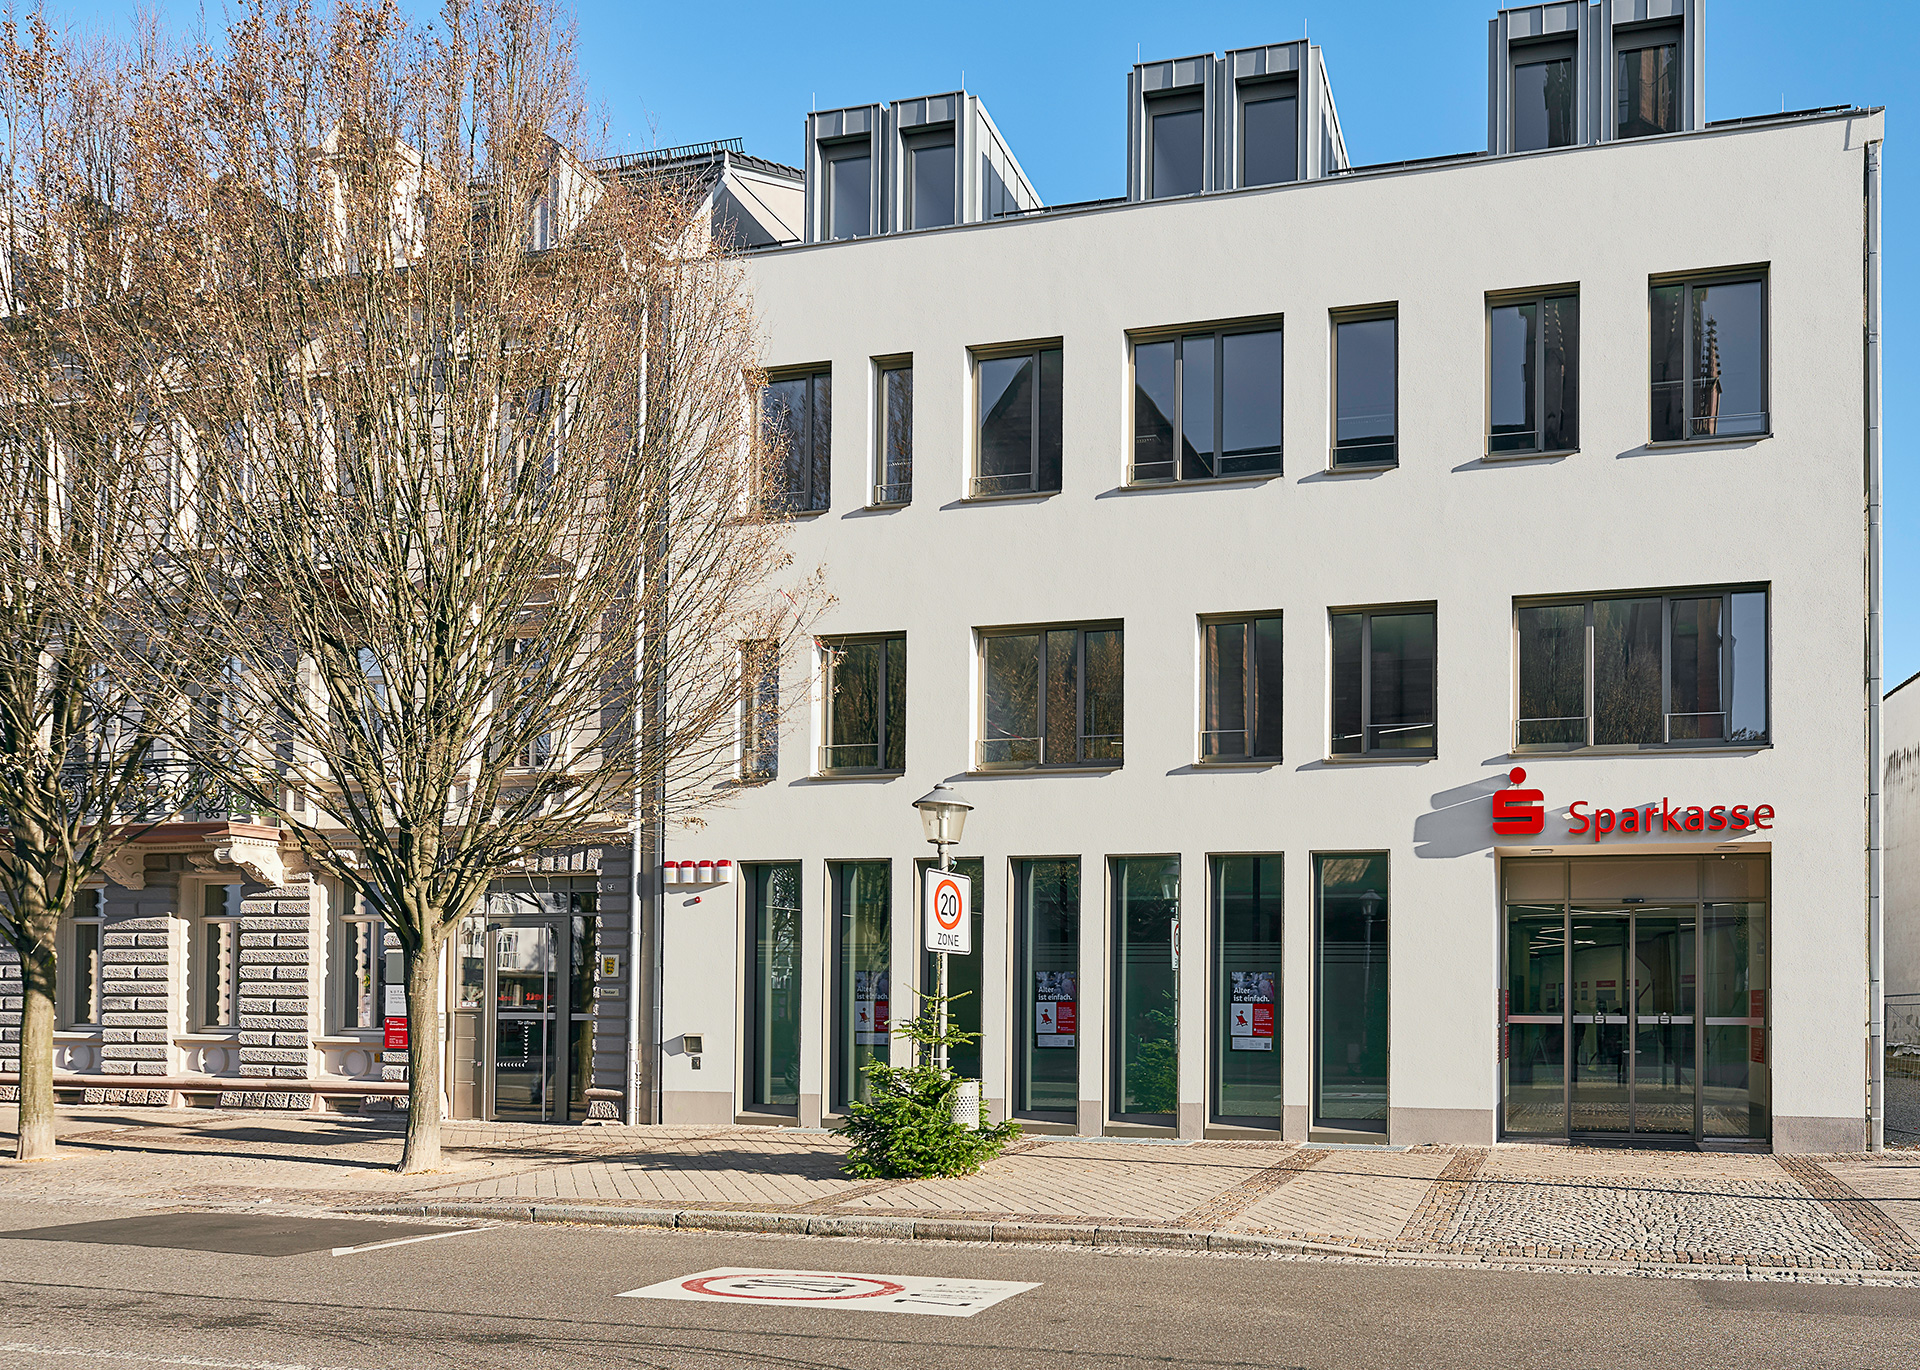 S-Kundencenter Sparkasse Offenburg